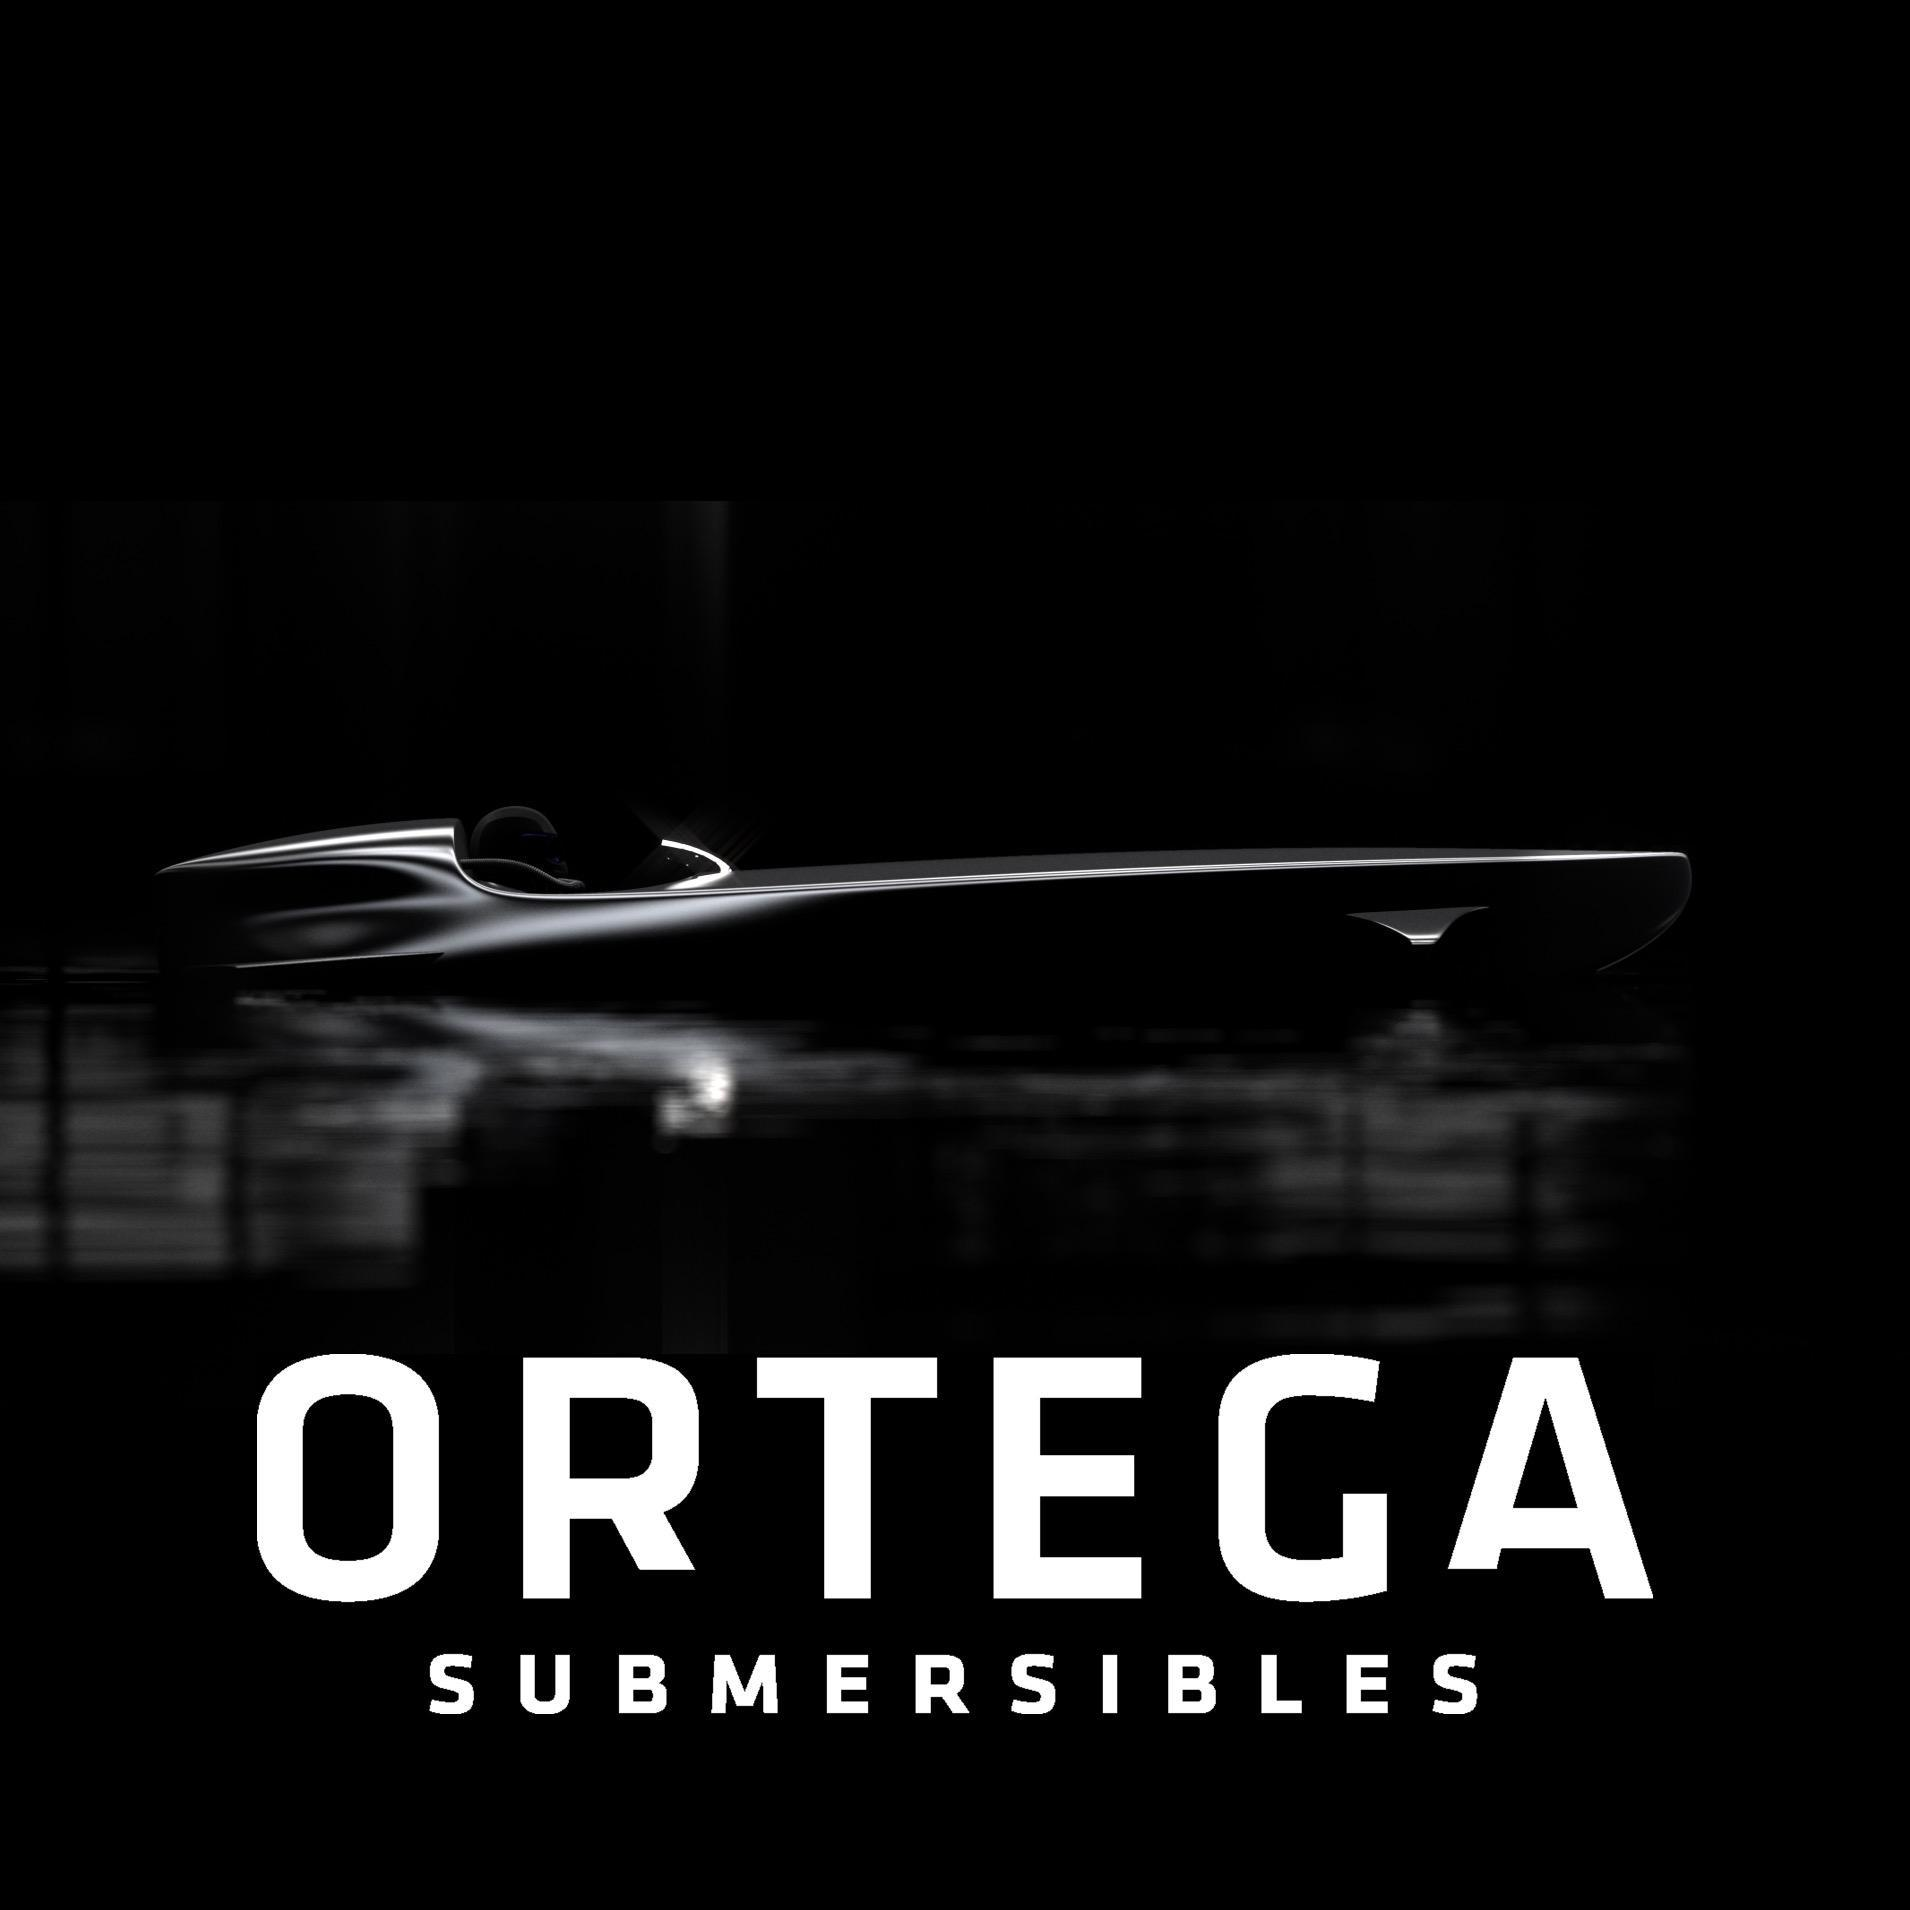 Ortega Submersibles